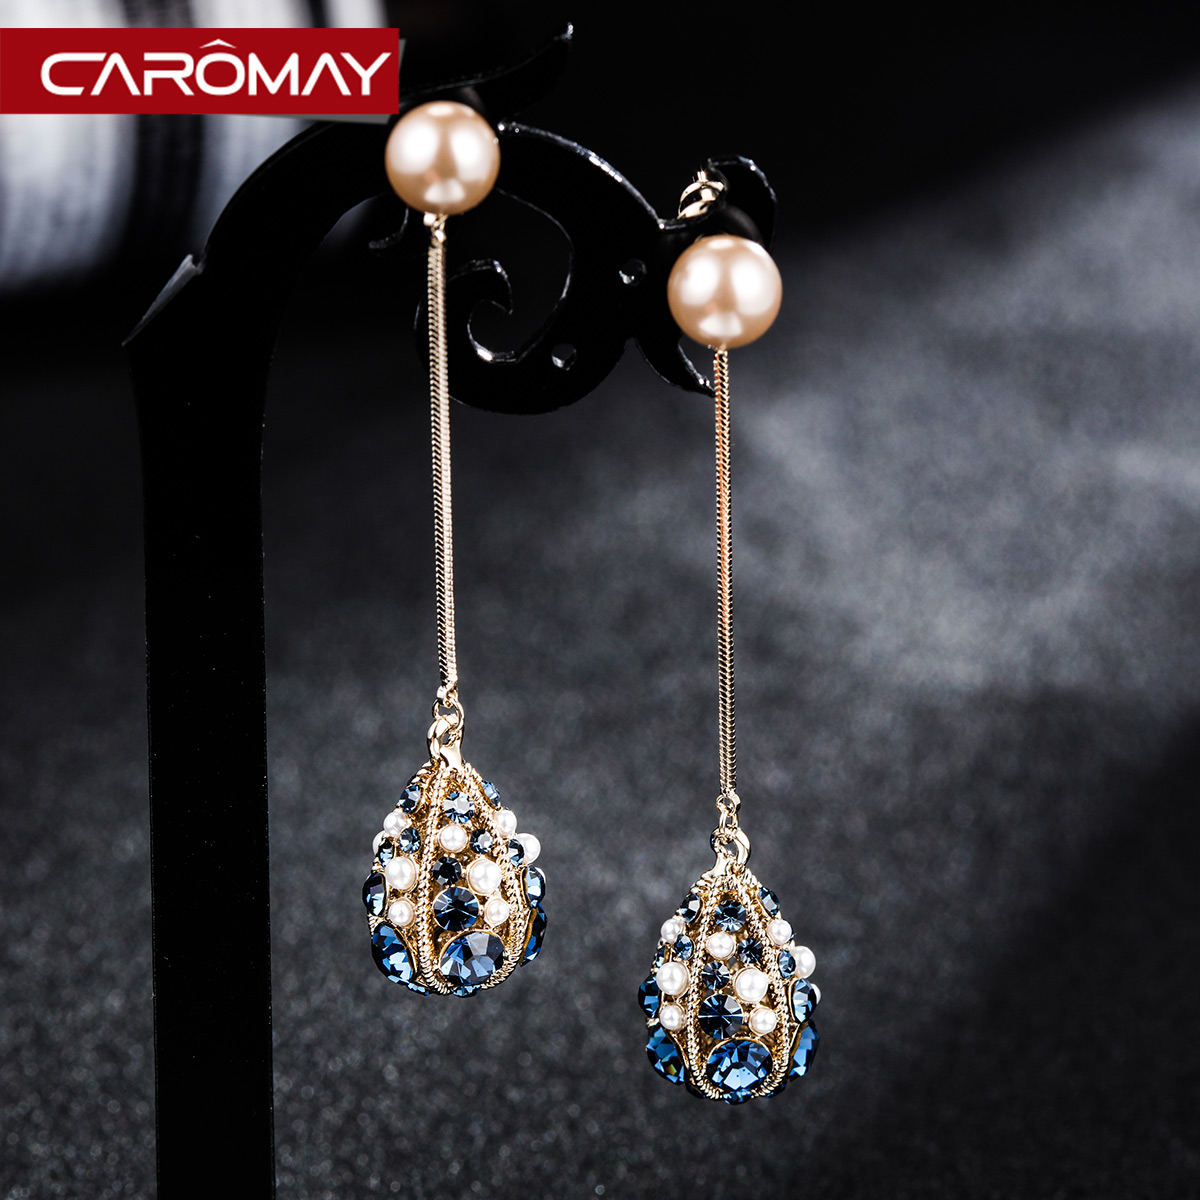 Baroque retro style earrings female long tassel earrings classic net red temperament high sense of thin face earrings